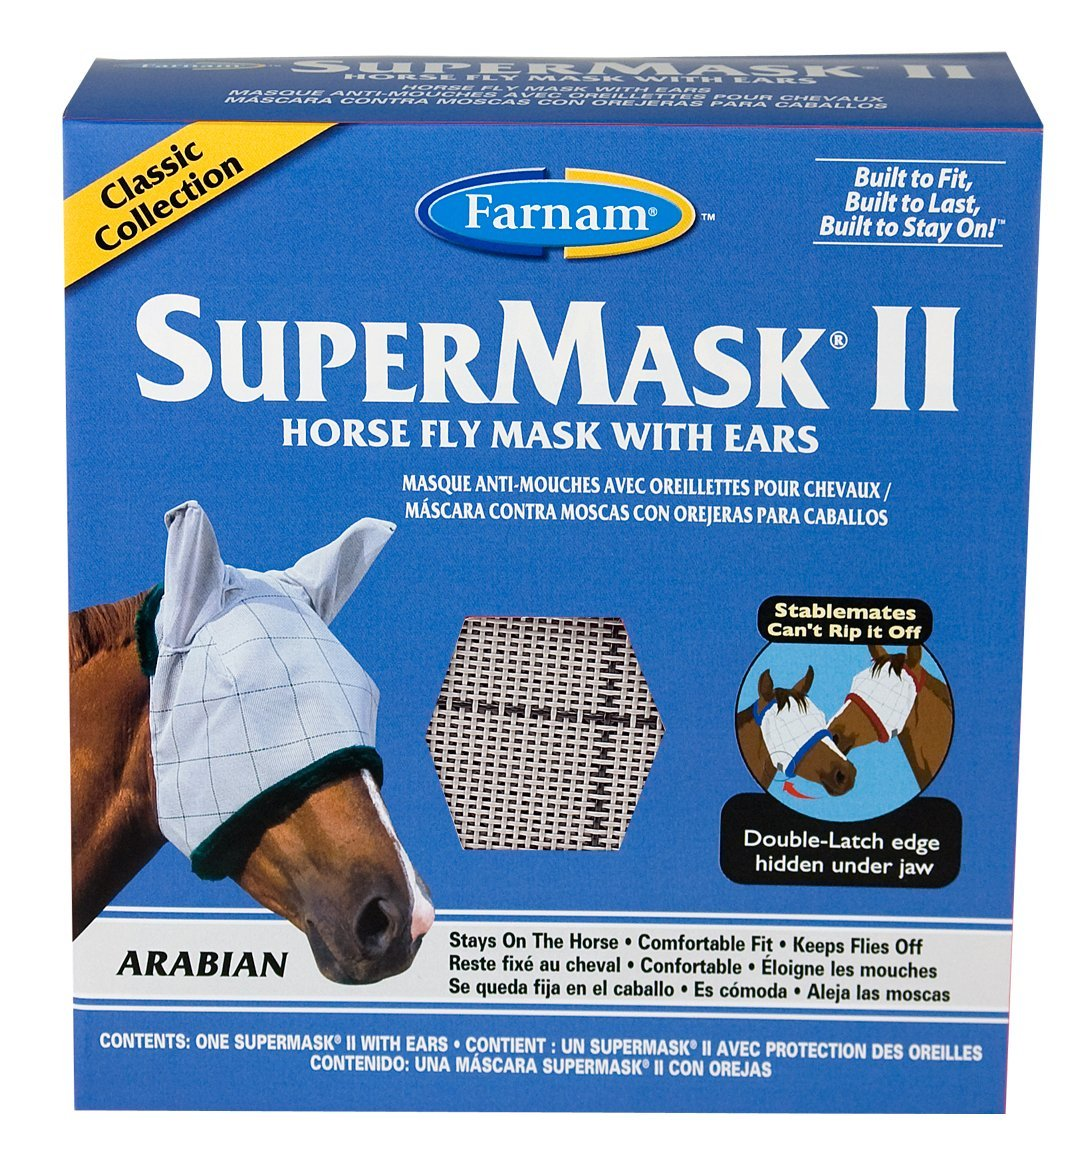 SuperMask II Classic Horse Fly Mask with Ears, Arabian size, Assorted, The double-latch closure stays on your horse; stable mates can't rip off By Farnam